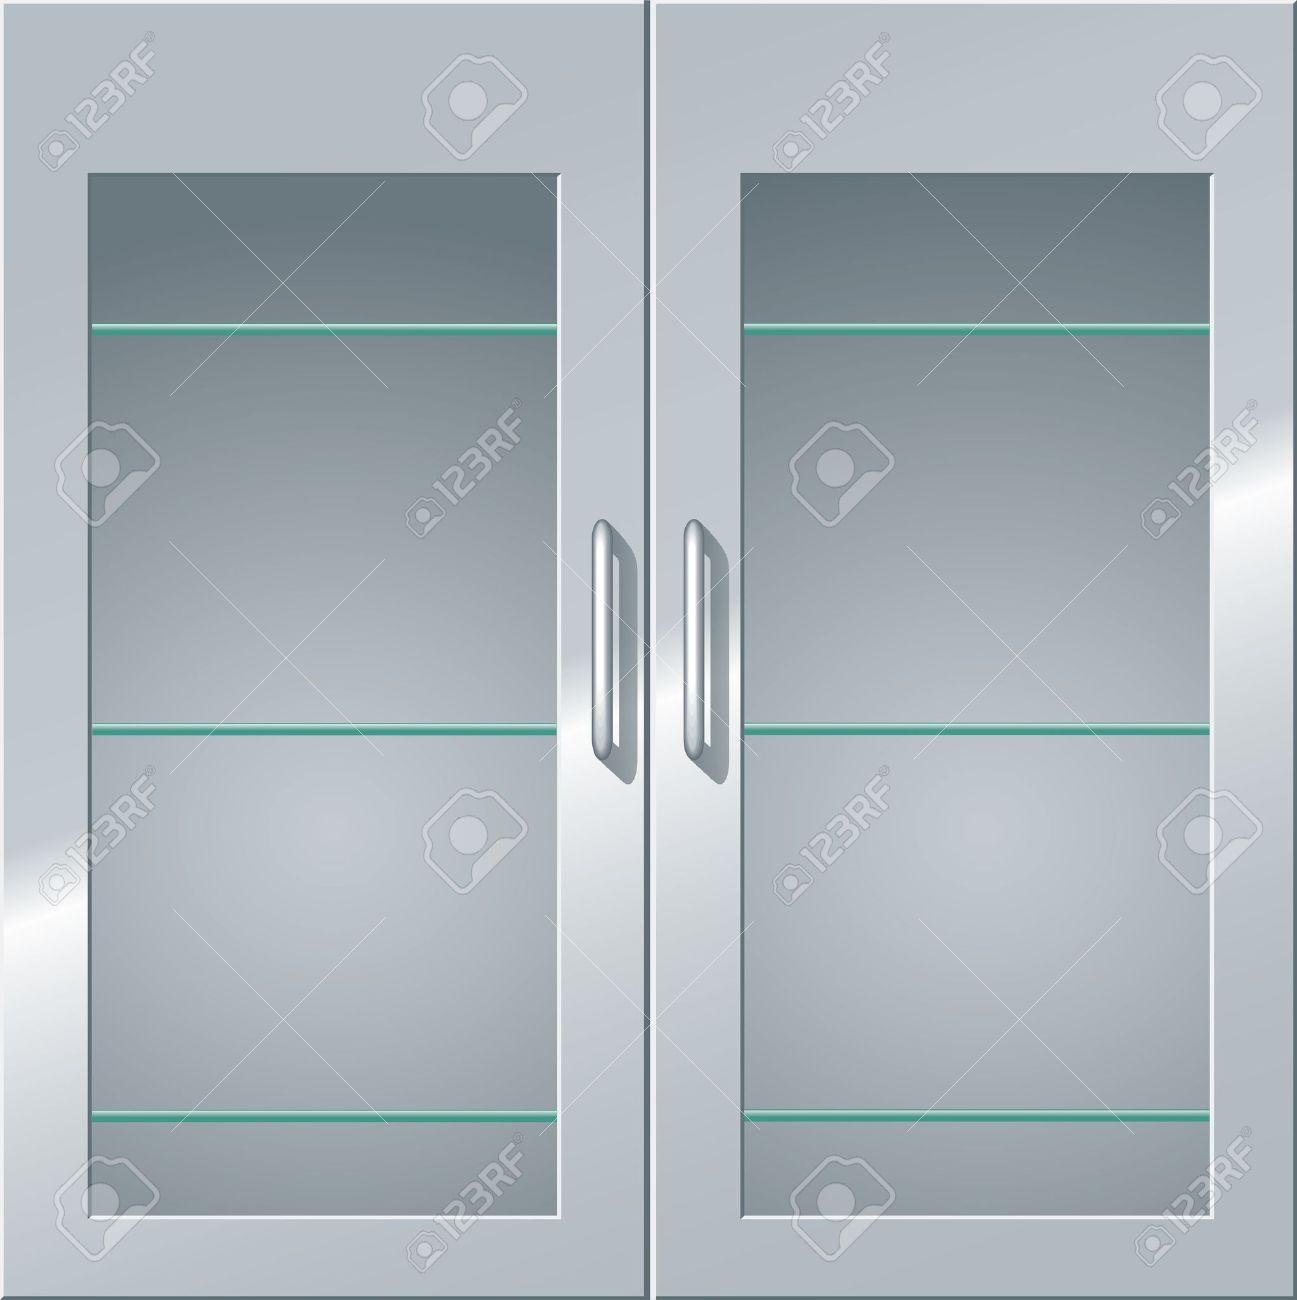 Front View Of A Metal Cabinet With Glass Doors And Shelves. Stock Vector    14408669